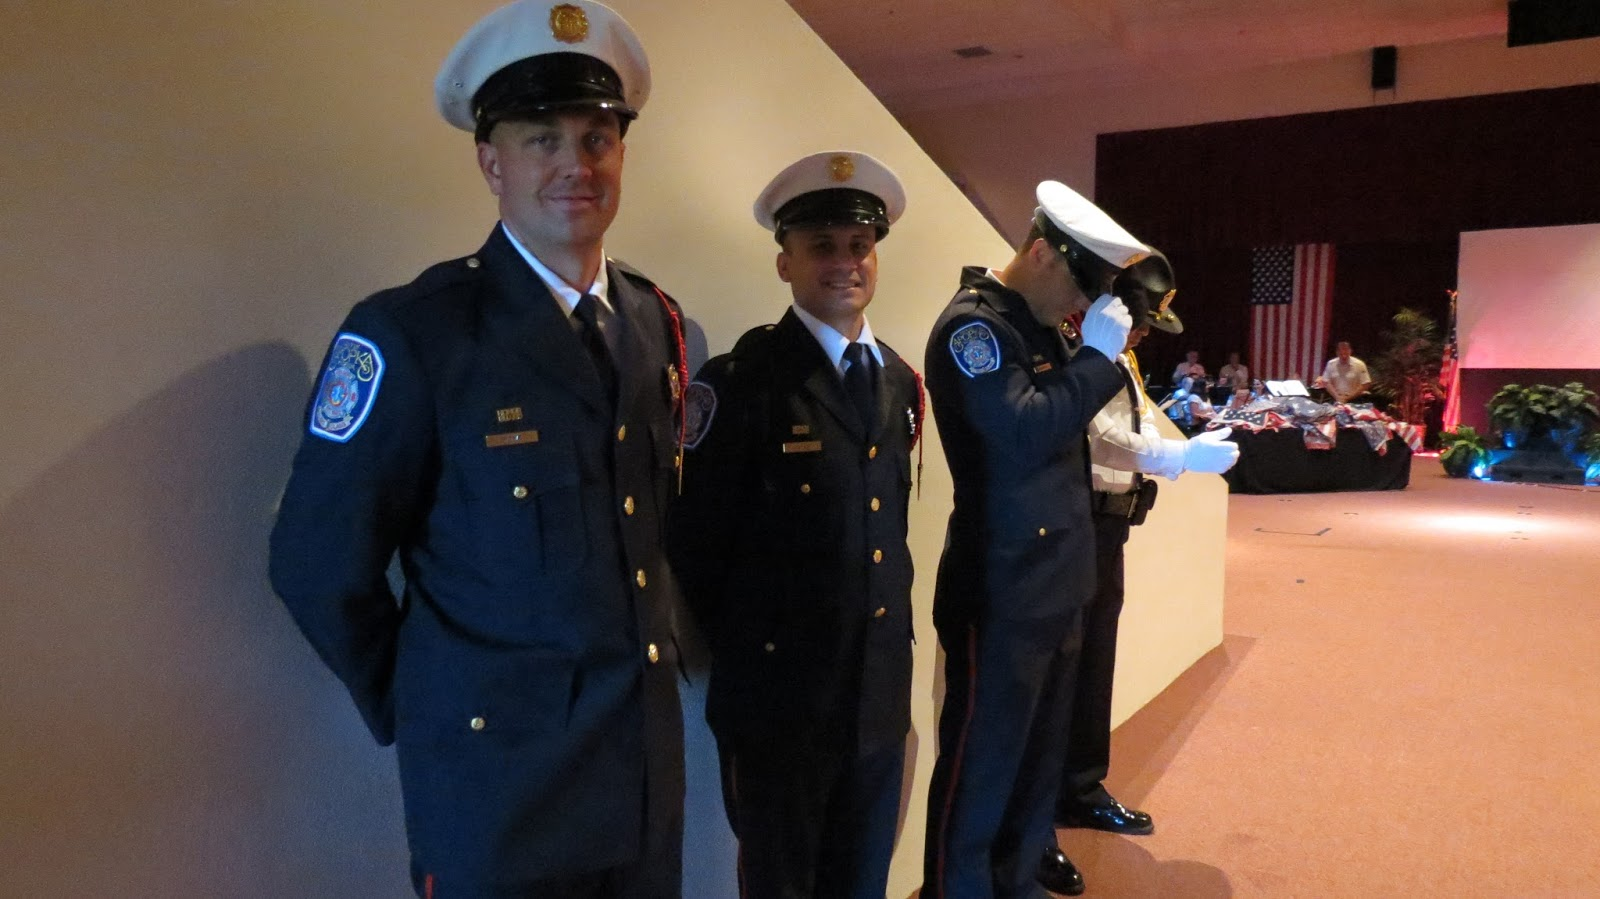 Combat Ptsd News Wounded Times Winter Park Scottish Rite Masonic Center Flag Ceremony